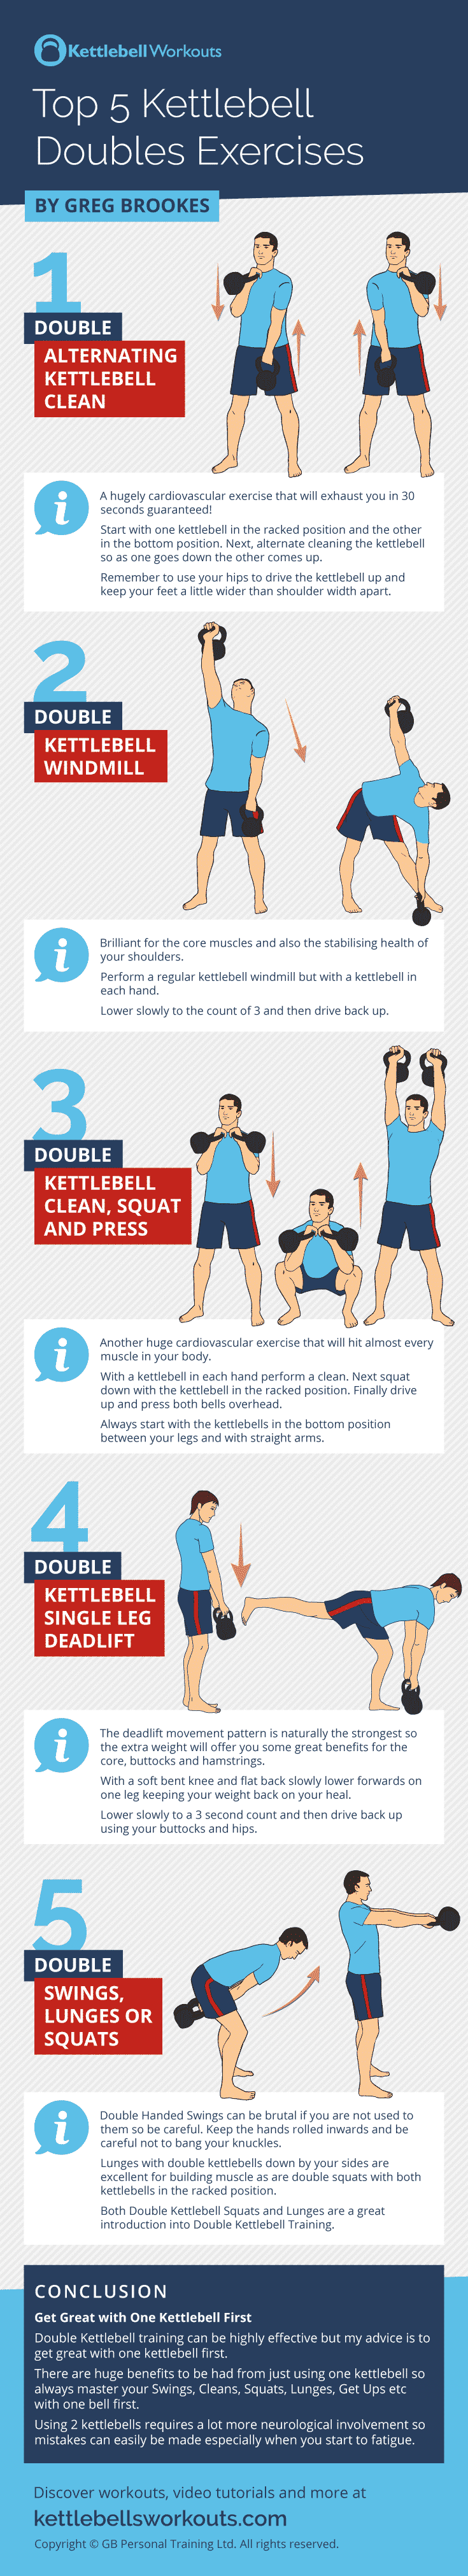 Top 5 Kettlebell Doubles Exercises Plus Workout